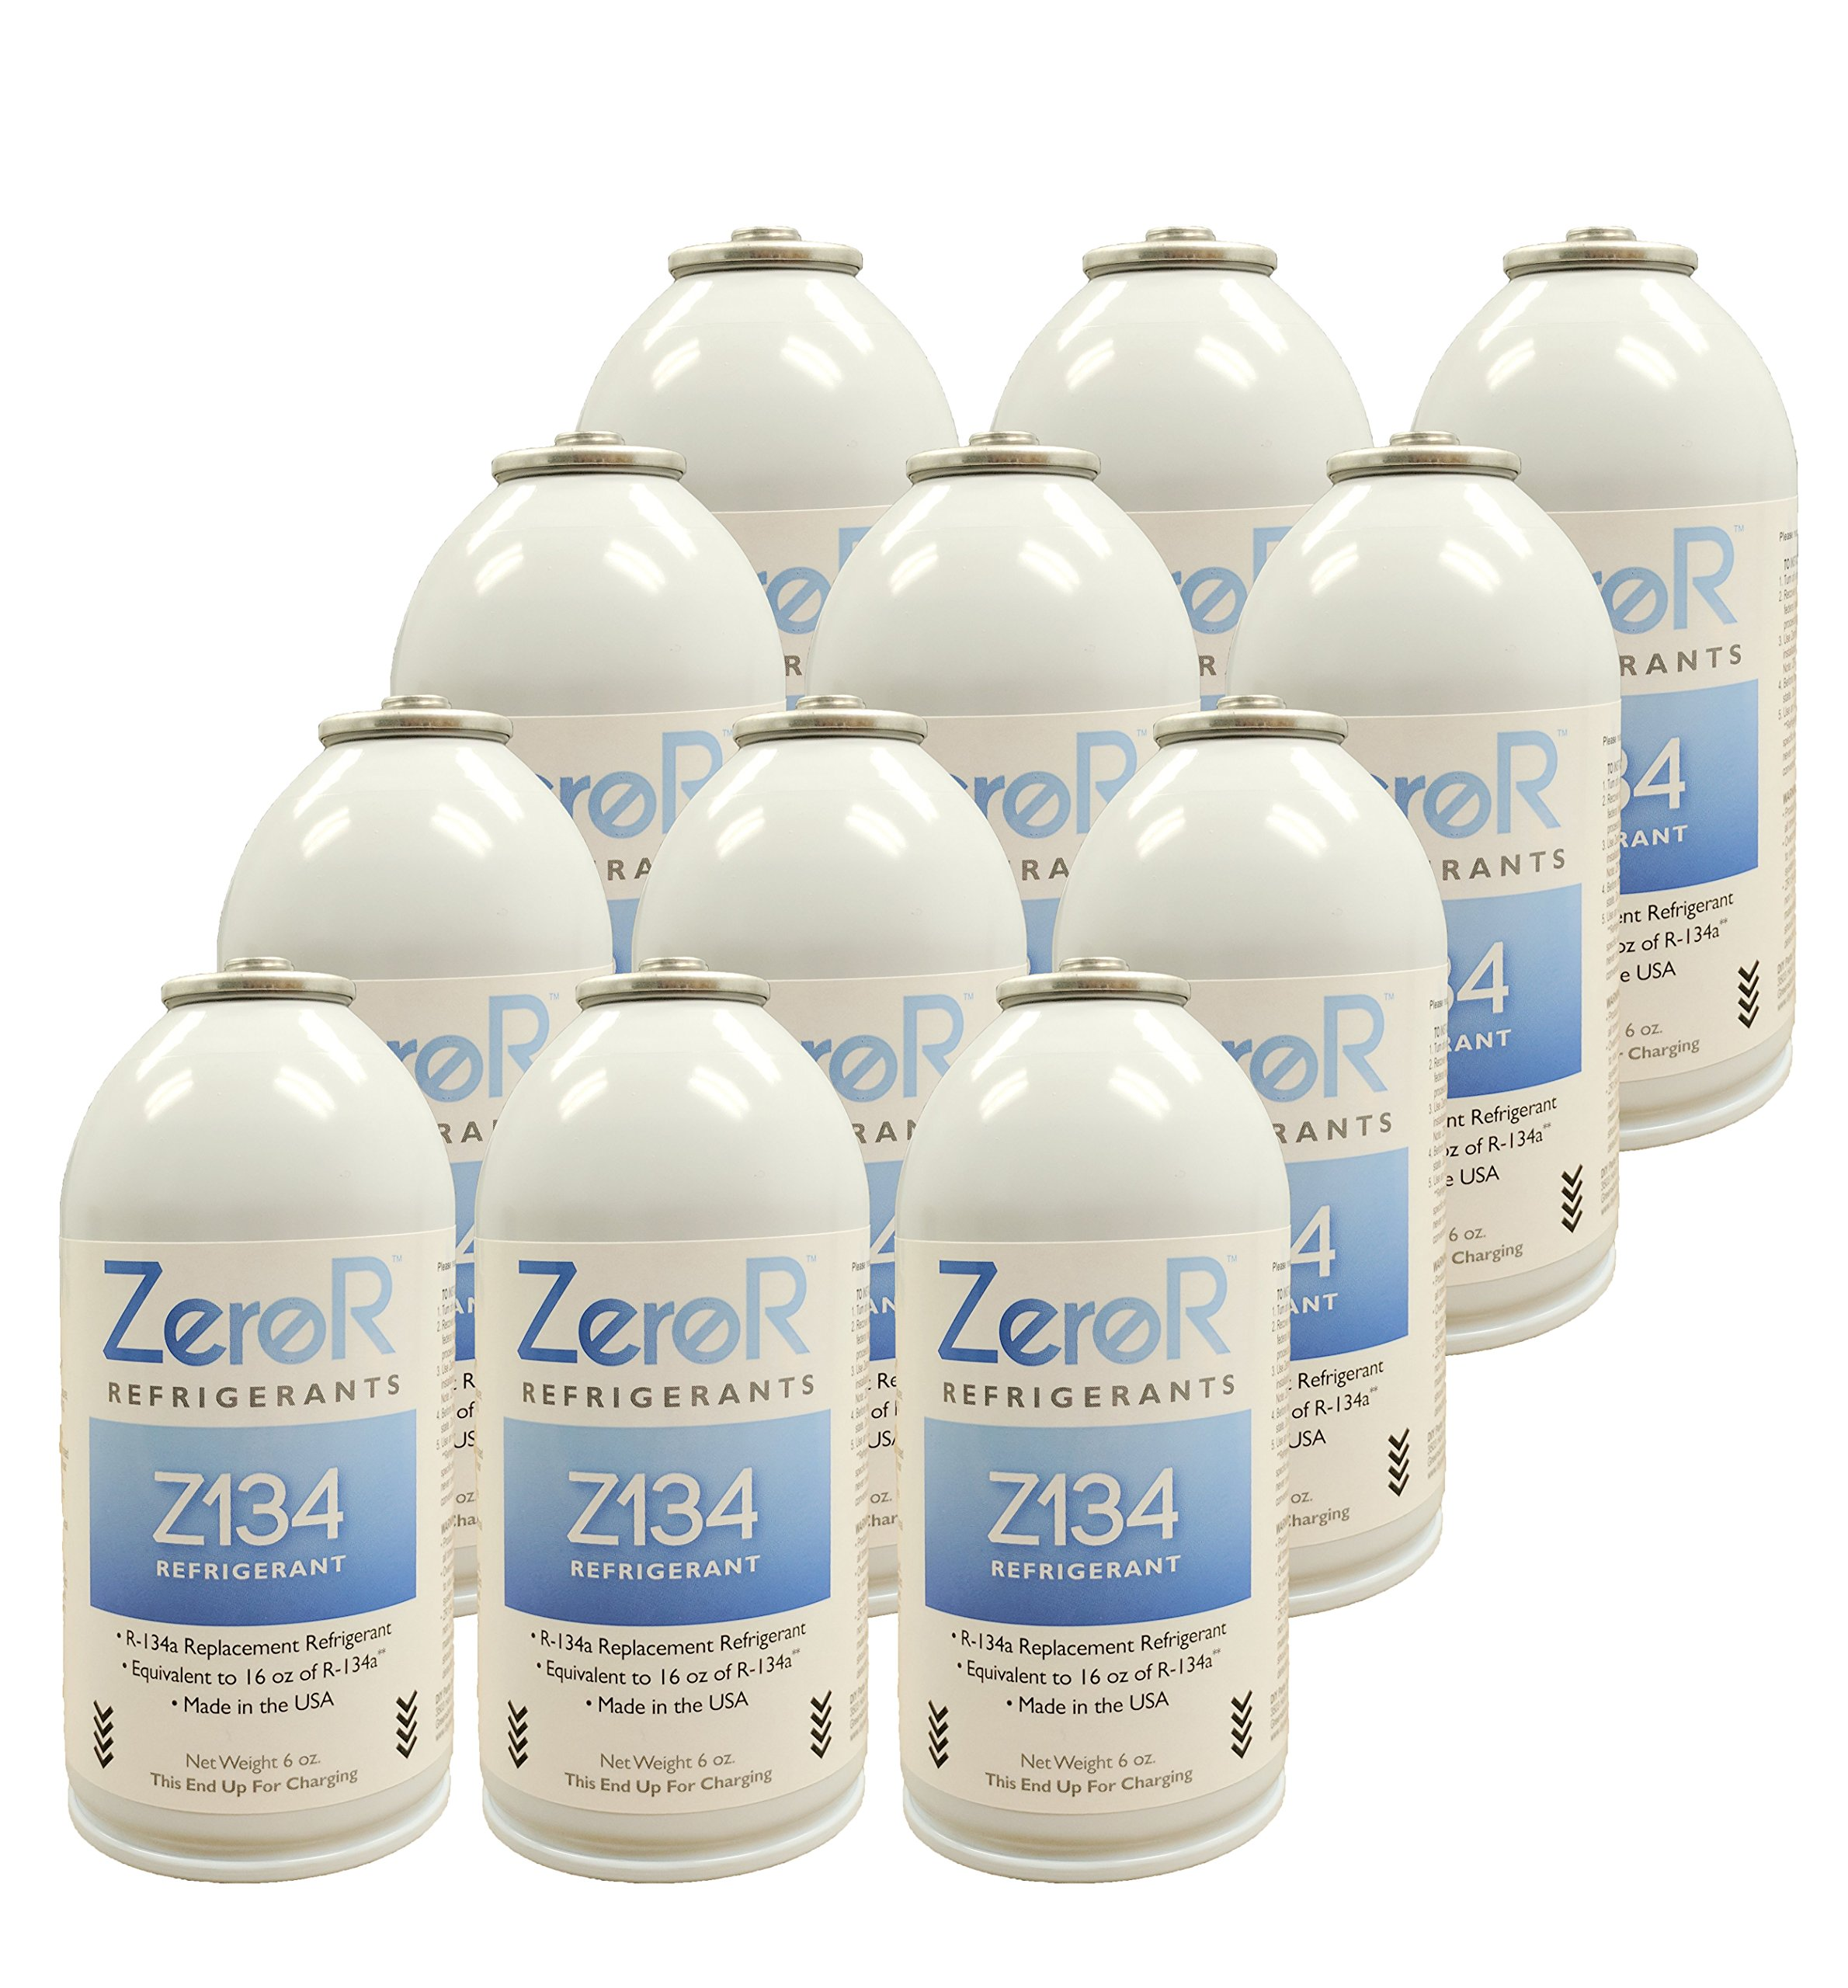 ZeroR Z134 Refrigerant - R134a Replacement - 12 Cans (1 Case) - Made in USA - Natural Non Ozone Depleting by ZeroR